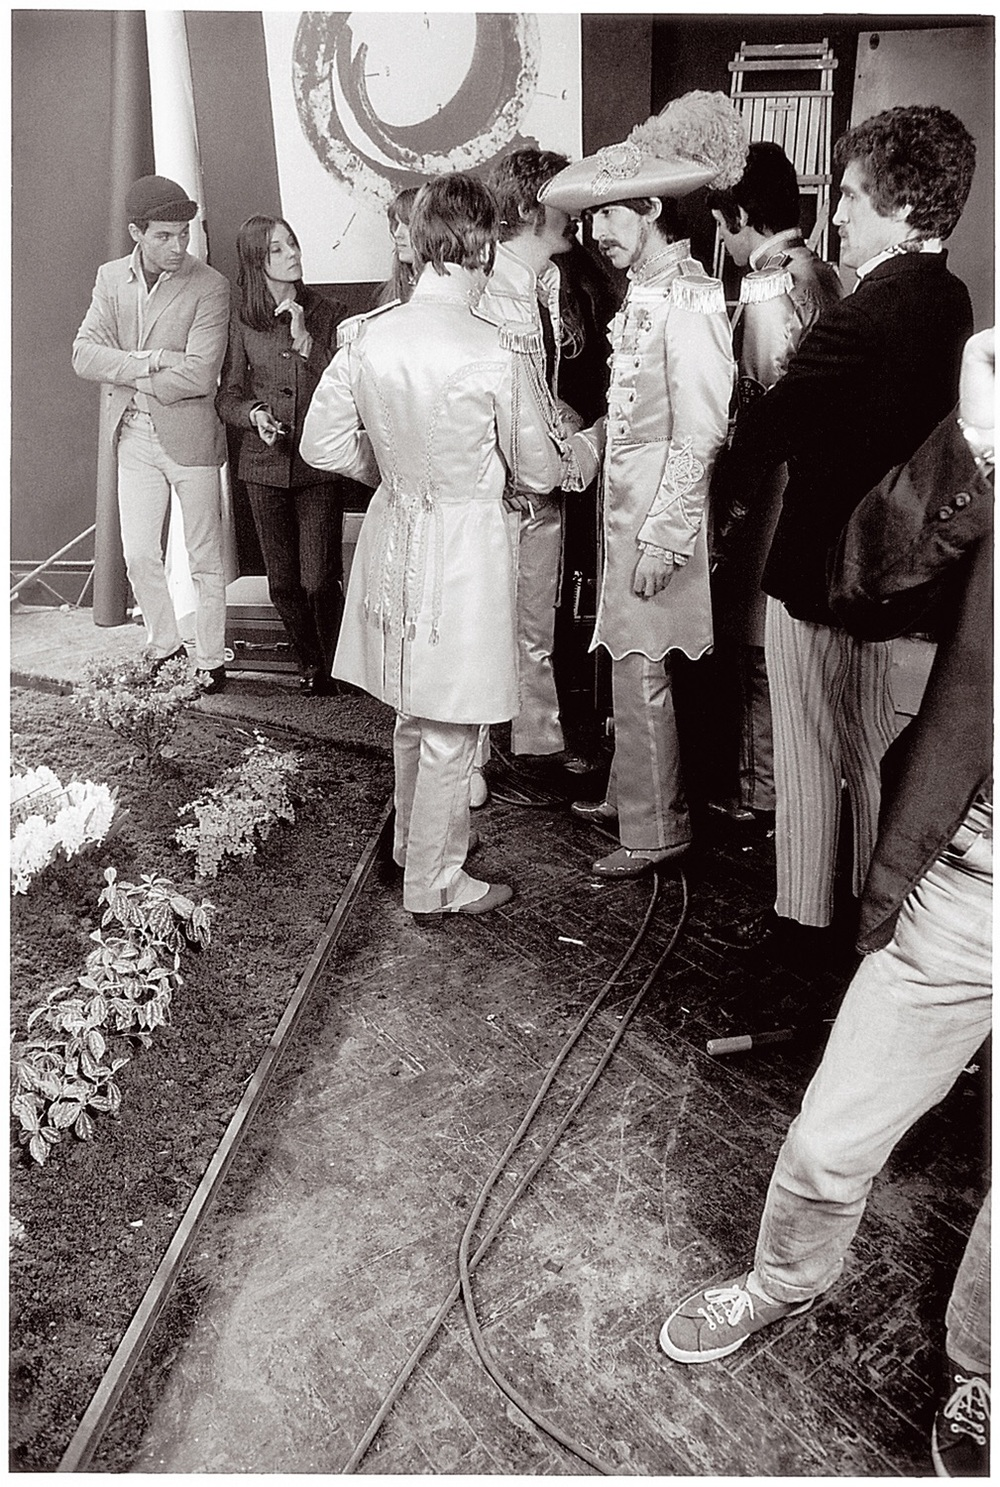 Members of Sgt. Pepper's Lonely Hearts Club Band getting ready for their photo shoot, March 1967.